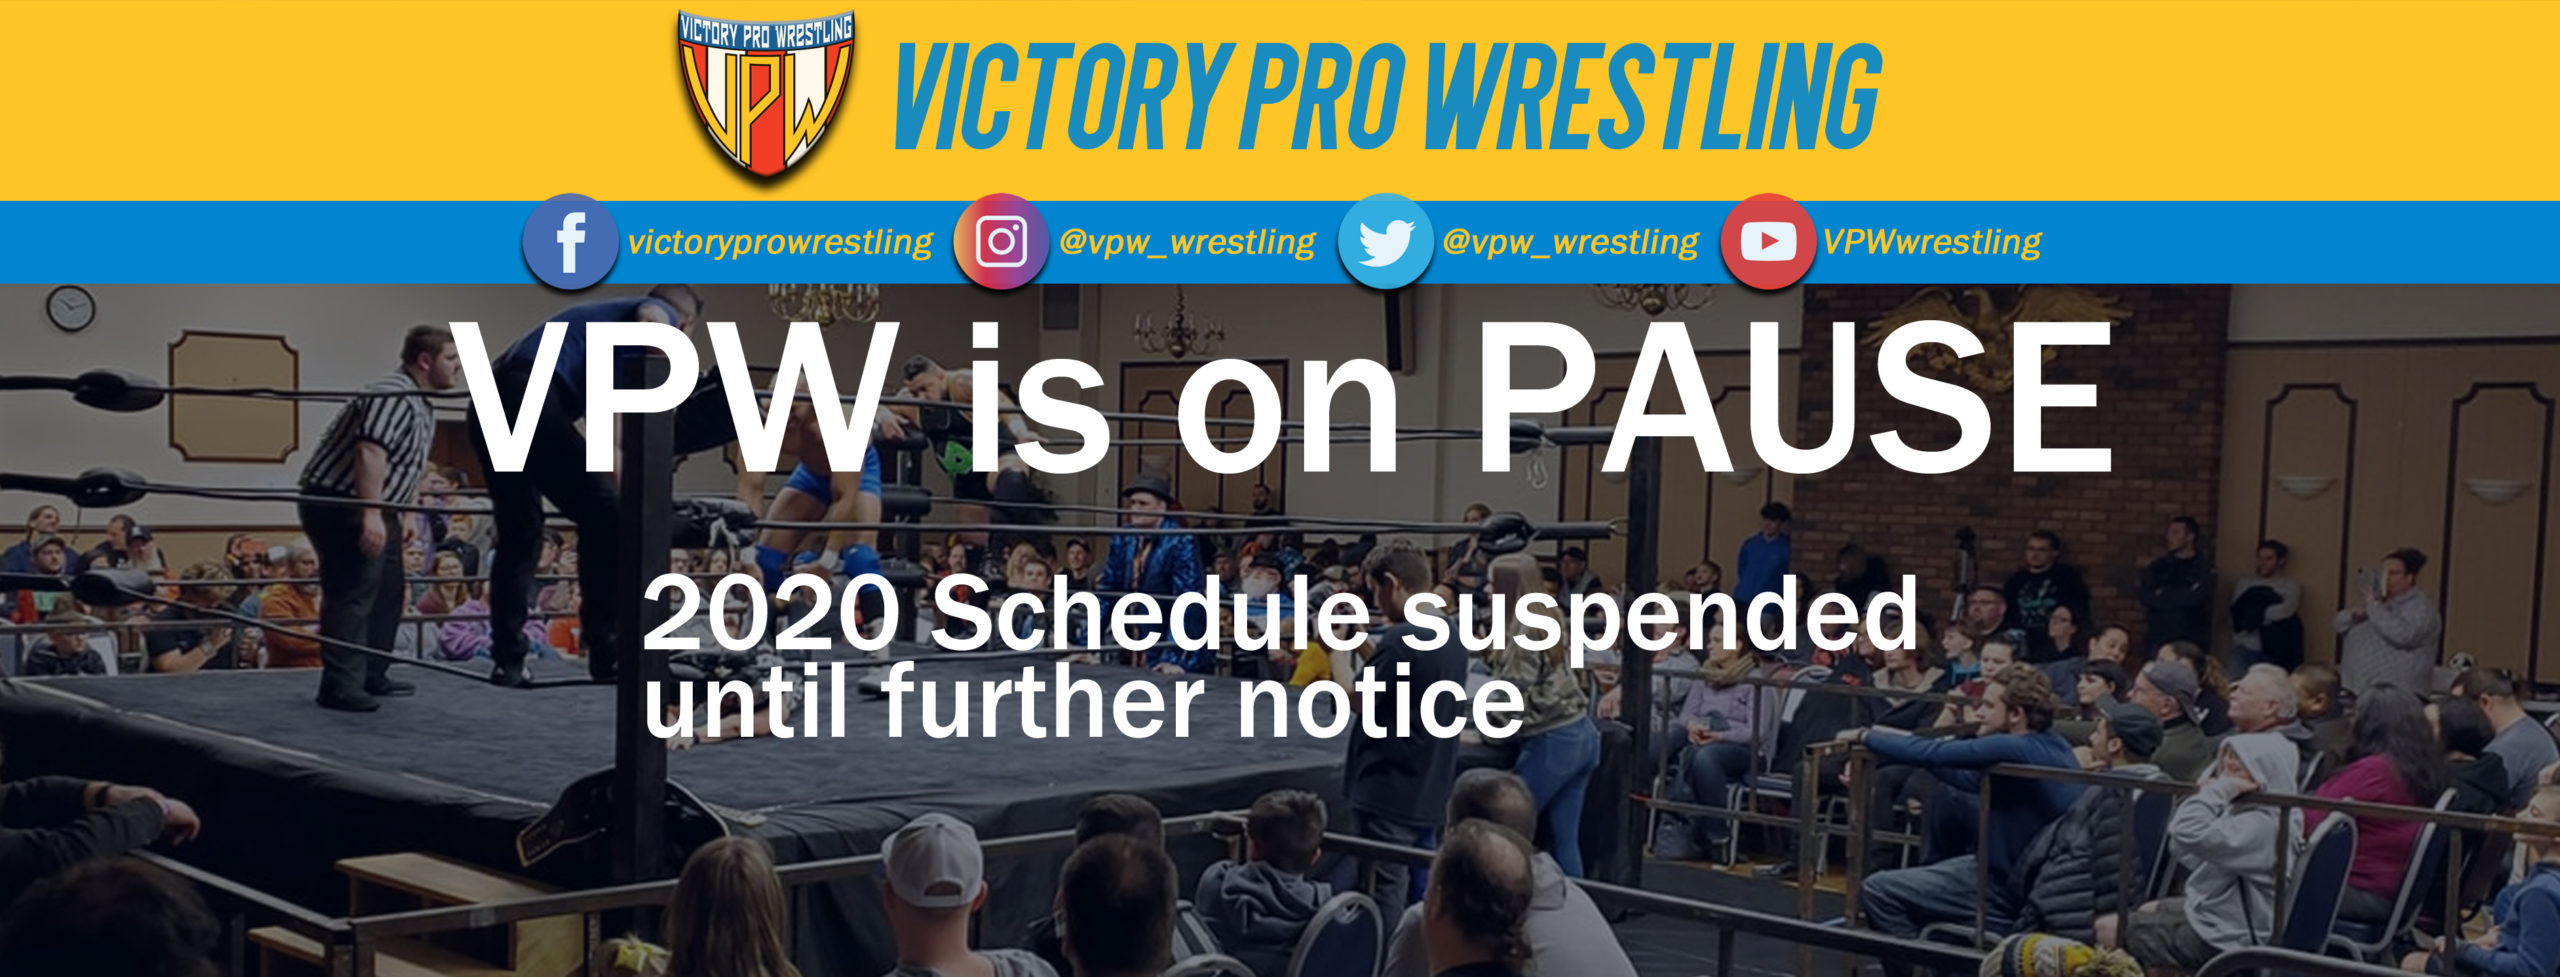 VPW is on PAUSE.  2020 Schedule suspended until further notice.